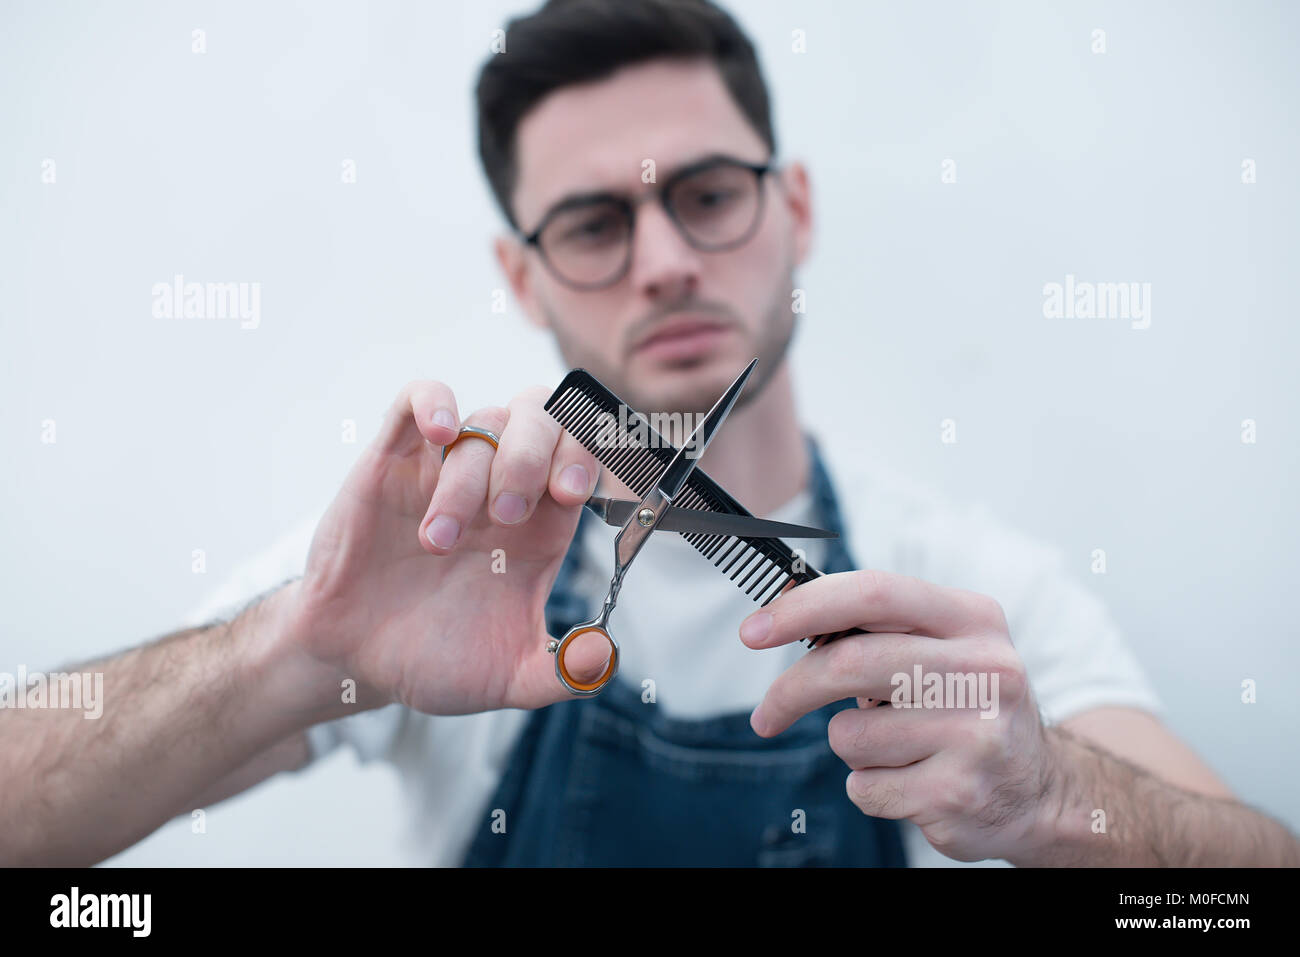 Barber holds the comb and scissors on his arms outstretched against the background of a white wall. Focus on tools. - Stock Image